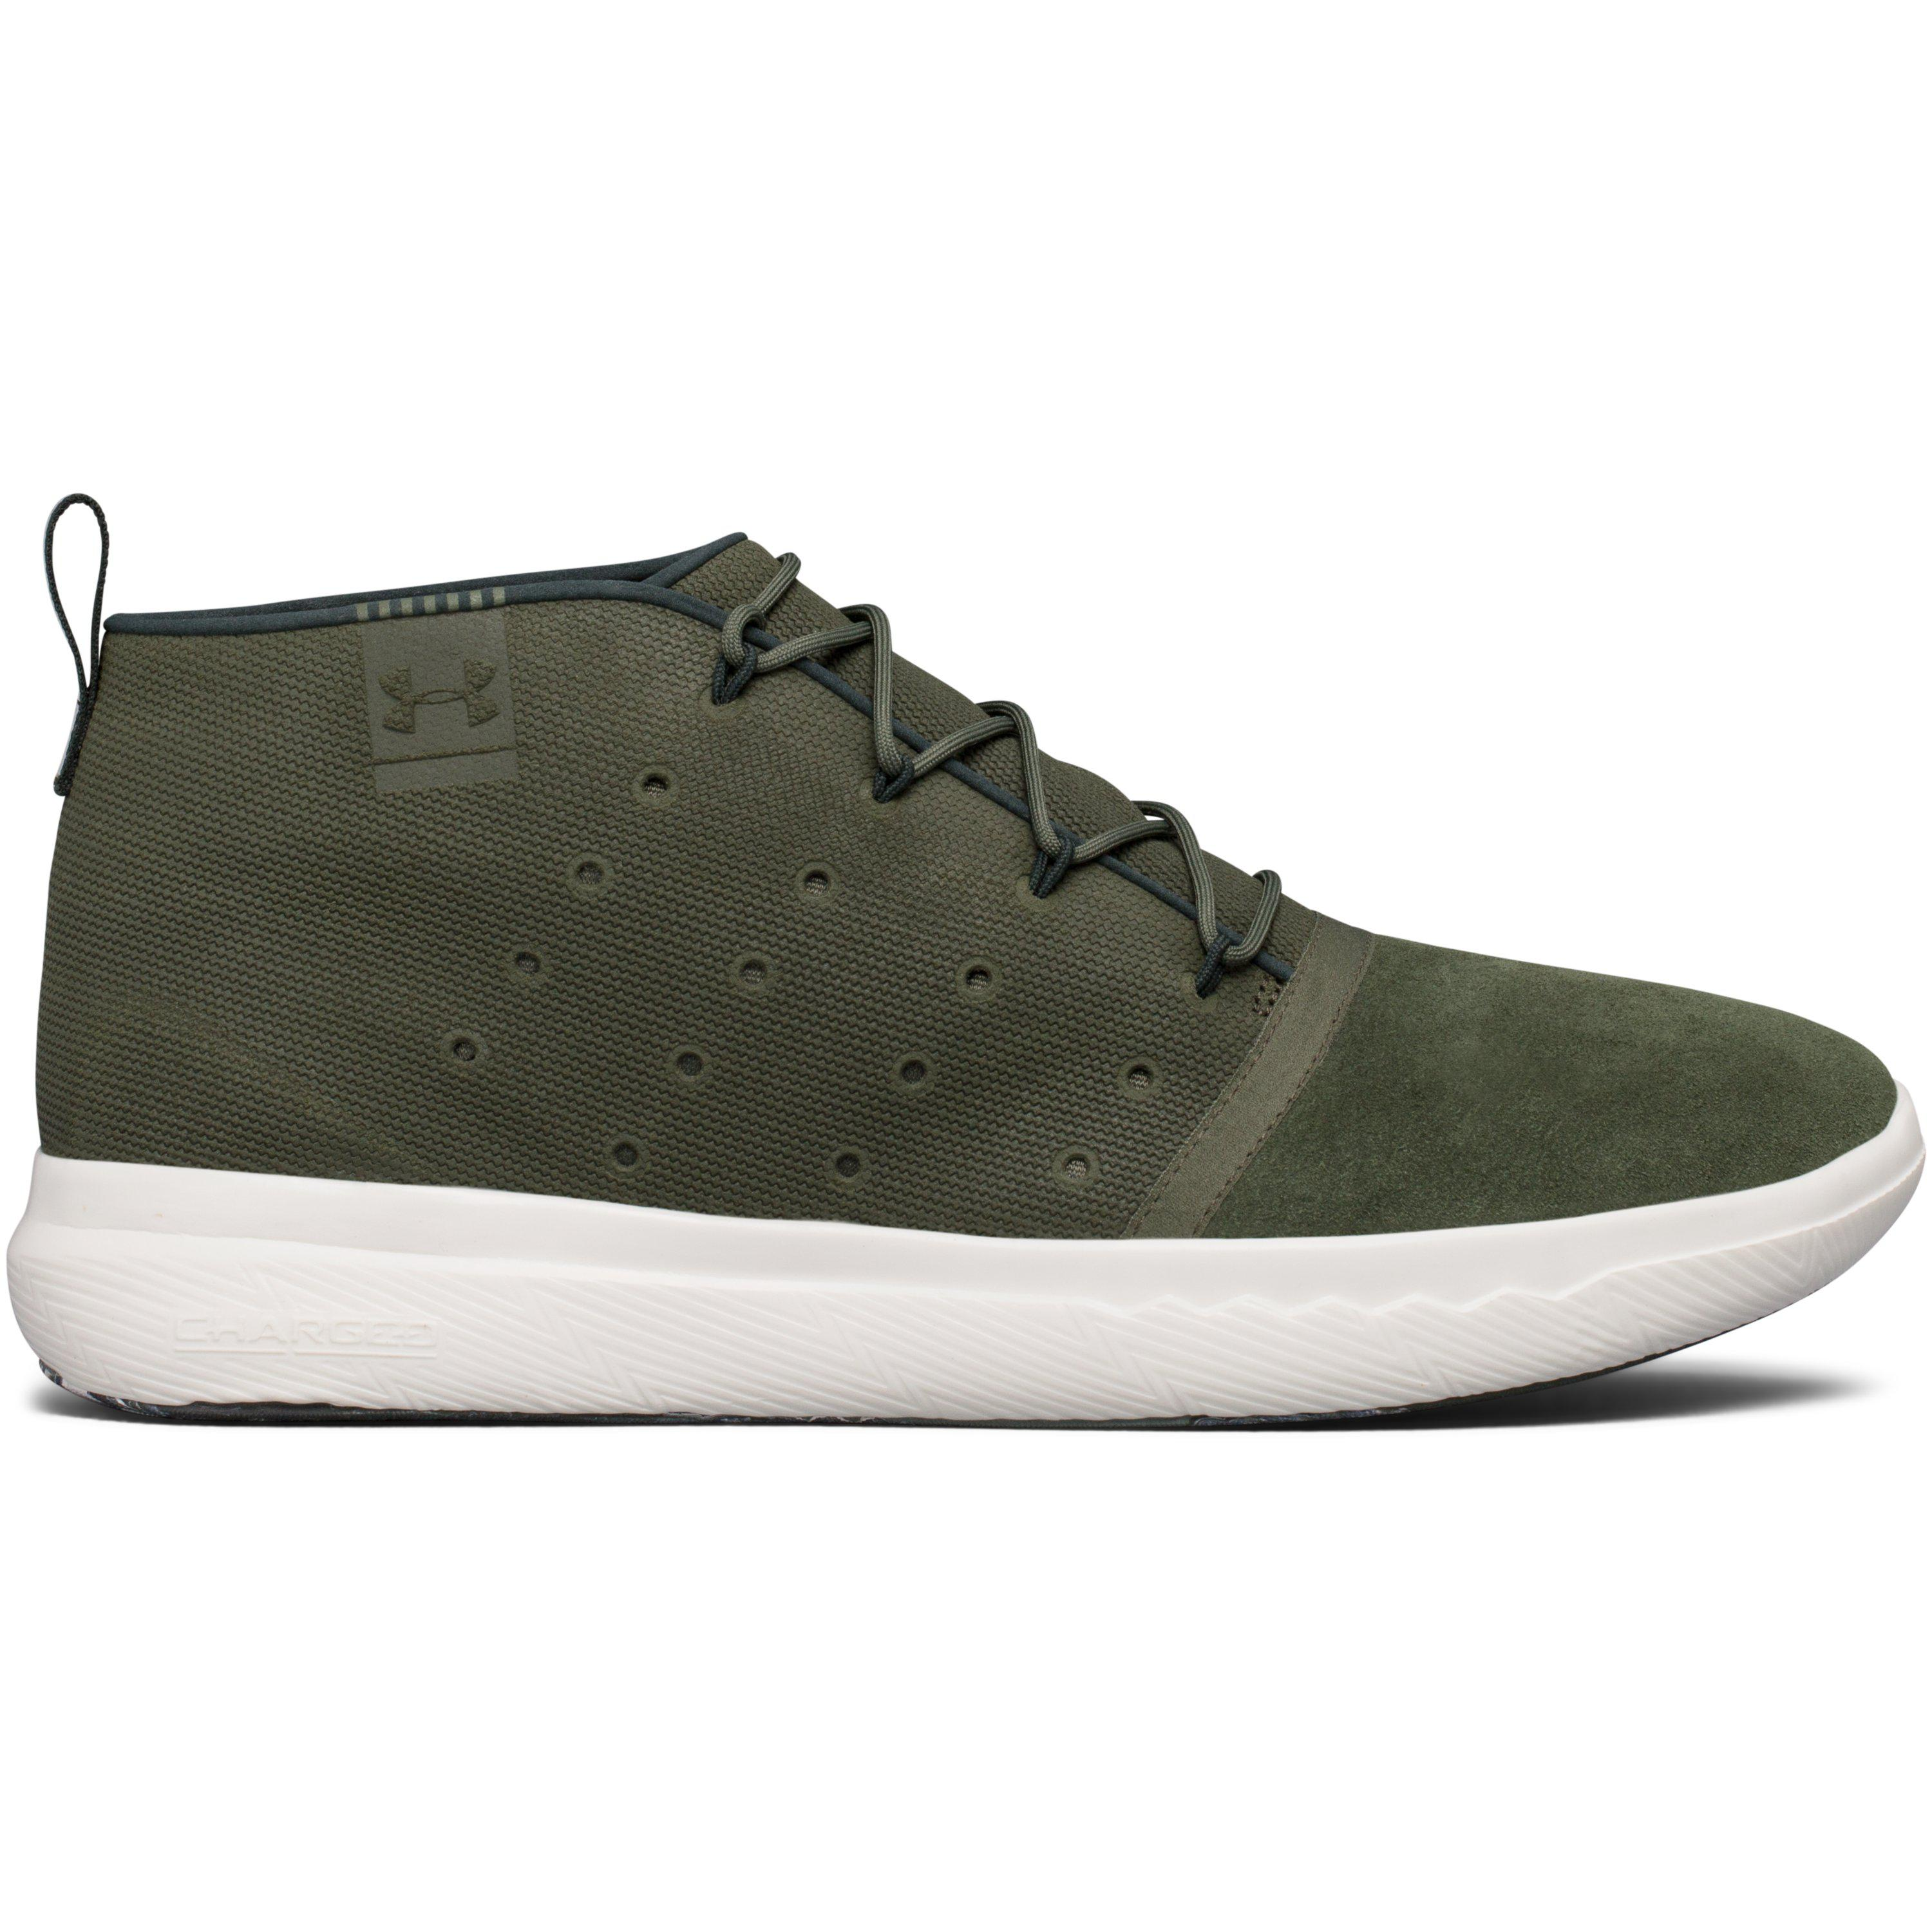 7bad6a745a Lyst - Under Armour Men s Ua Charged 24 7 Mid Marble Lifestyle Shoes ...